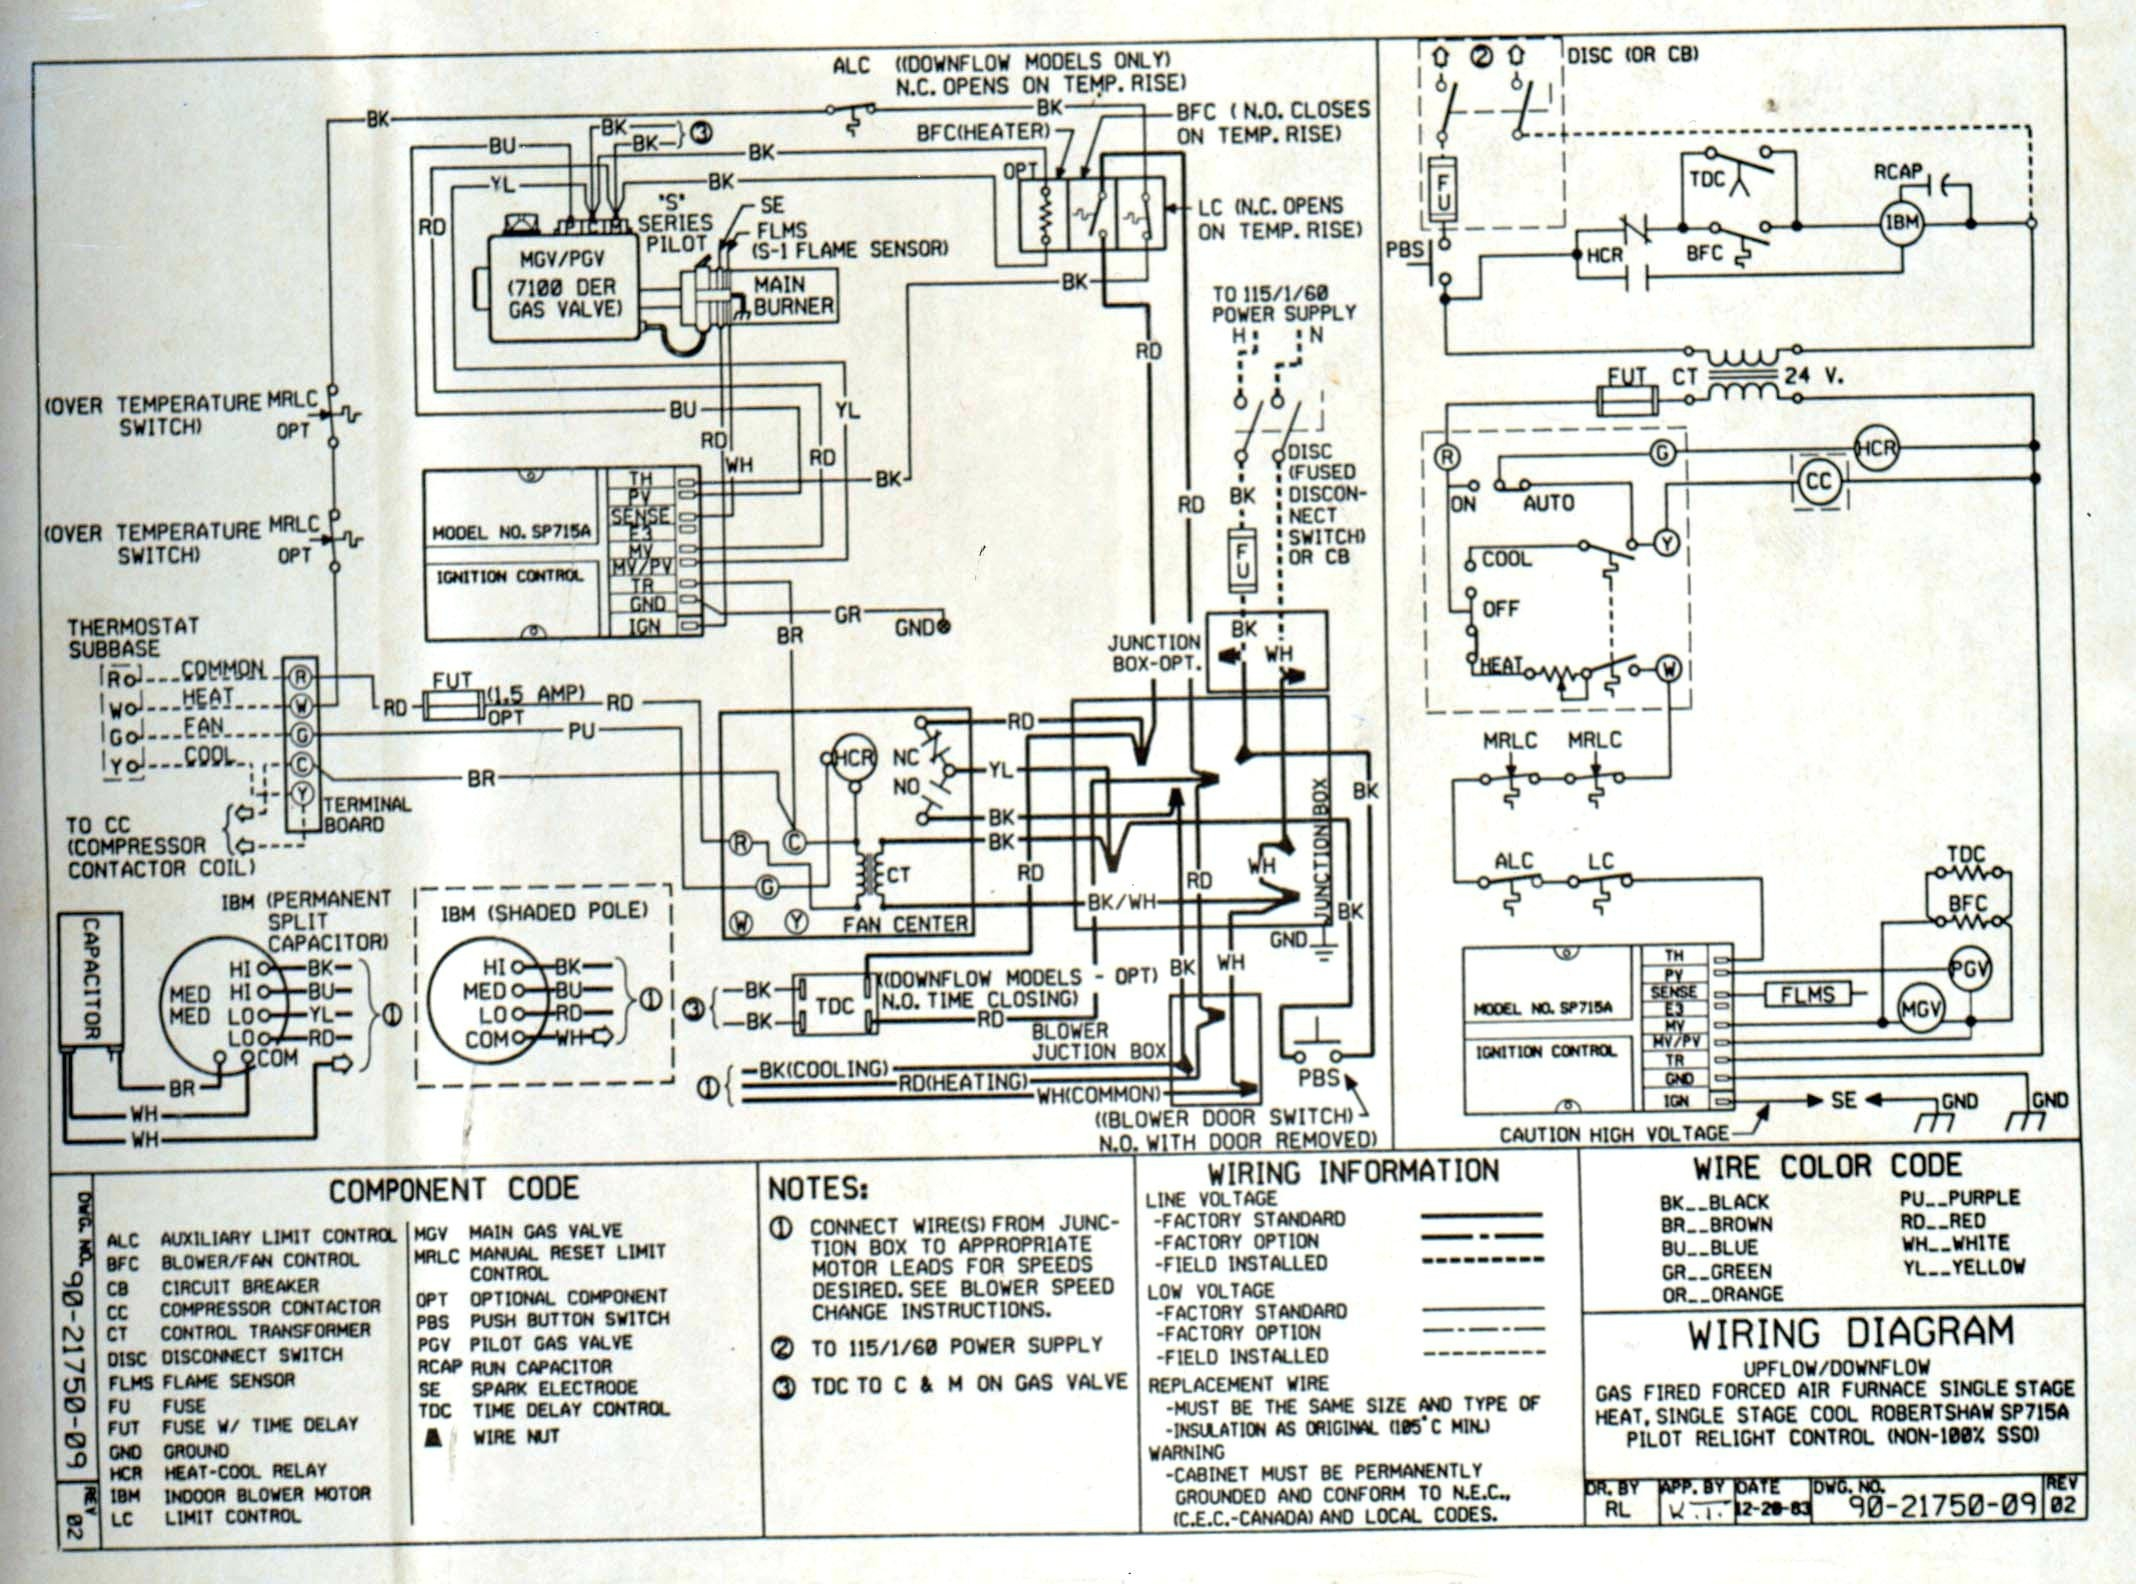 american standard furnace wiring diagram Download-Wiring Diagrams for Gas Furnace Valid Refrence Wiring Diagram for Carrier Electric Furnace 20-a